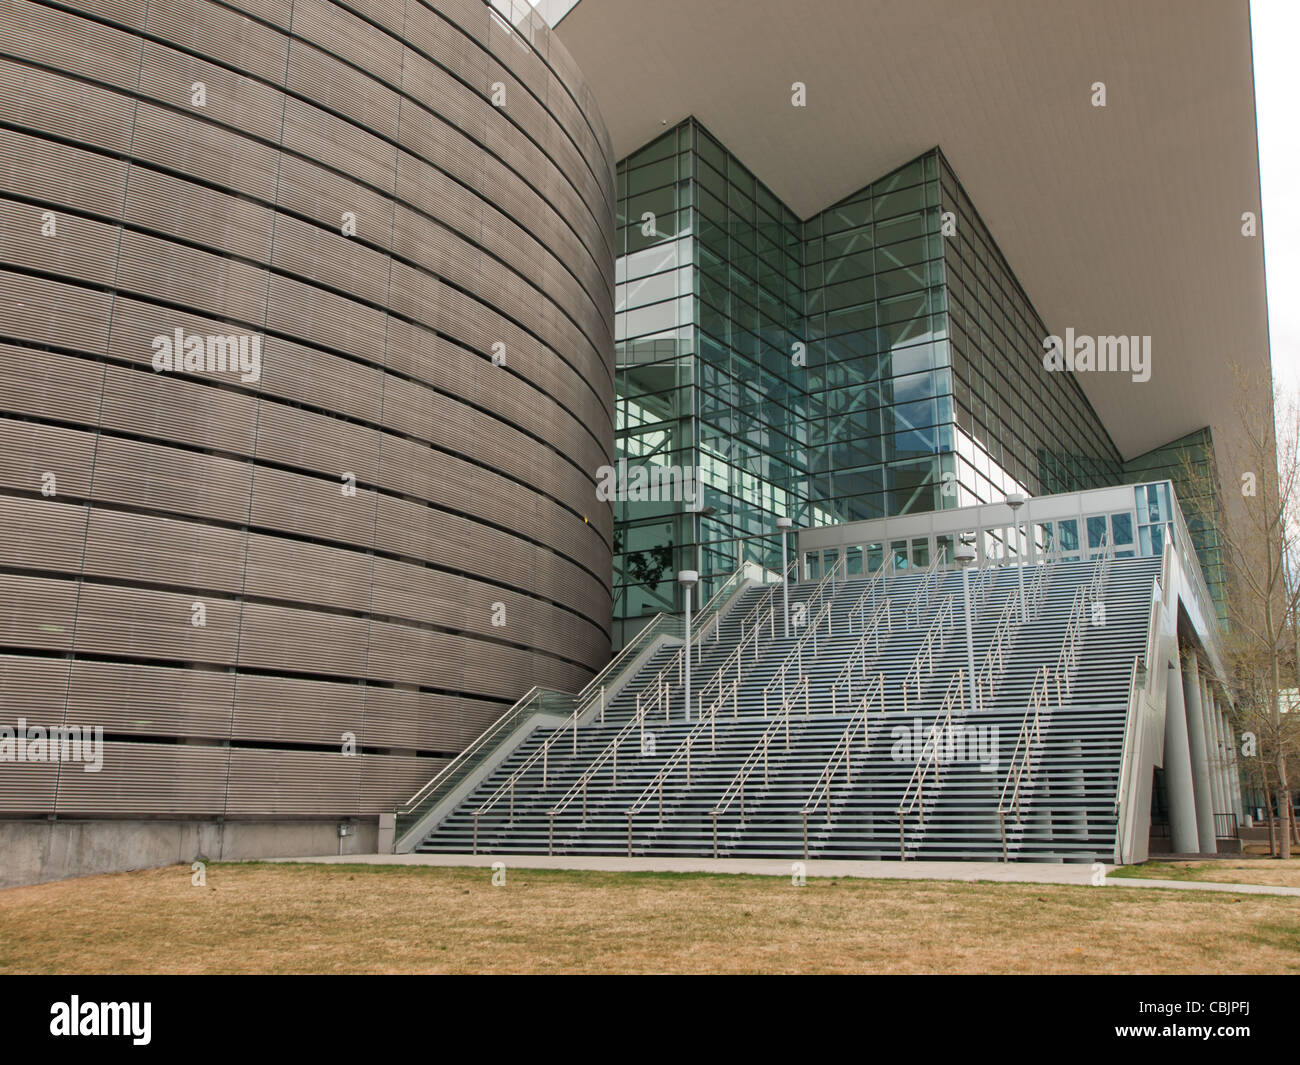 Detail of the Colorado Convention Center in Downtown Denver. - Stock Image